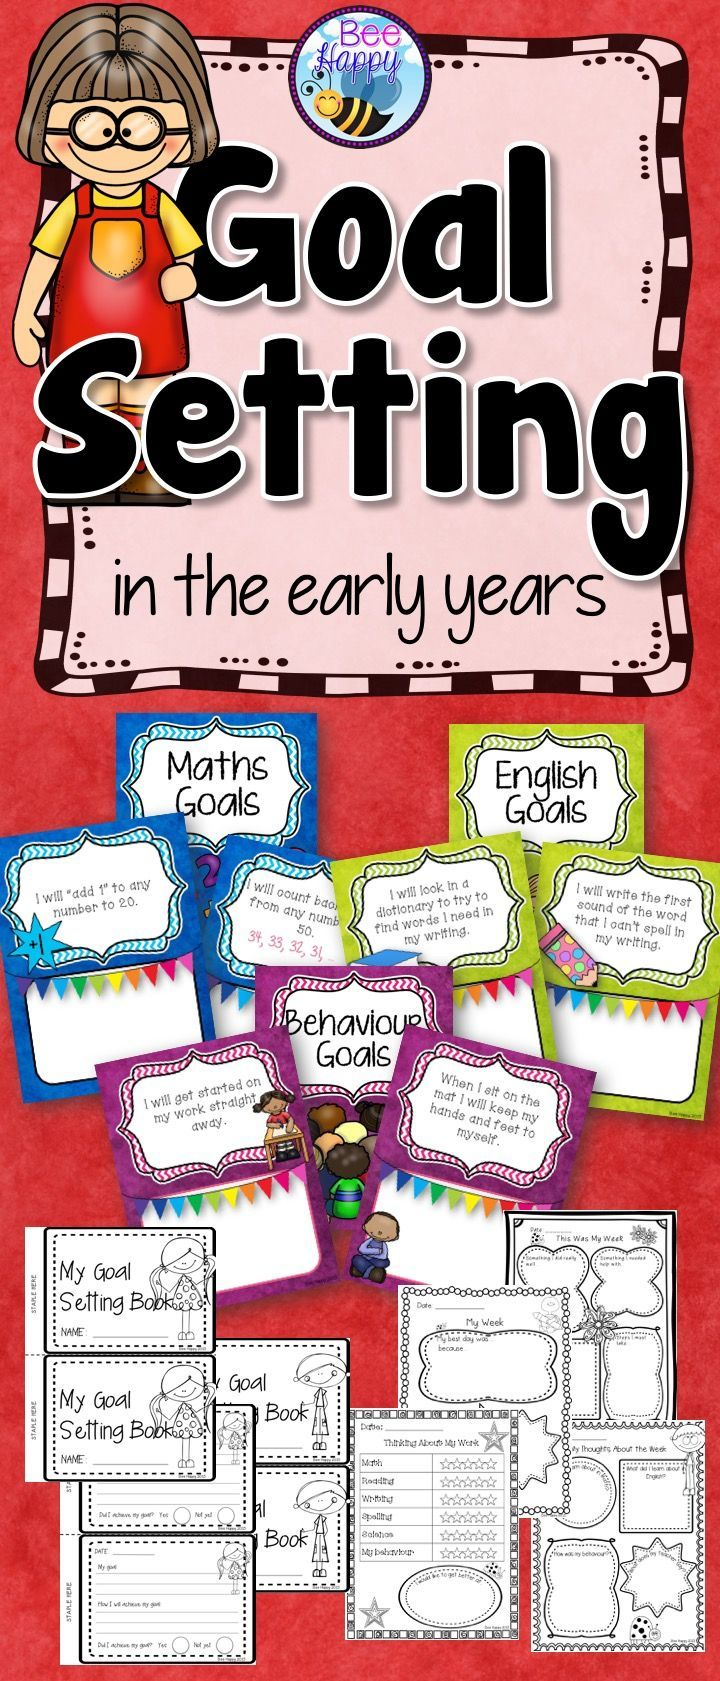 When children first start the process of goal setting they need a lot of help and guidance to set SMART goals - Specific, Measurable, Achievable, Realistic and Timely goals. These goal sheets will assist you, the teacher, to introduce them to this process. Included are goal sheets for Math, English and Behavior, reflection sheets, goal books and teacher record sheets.